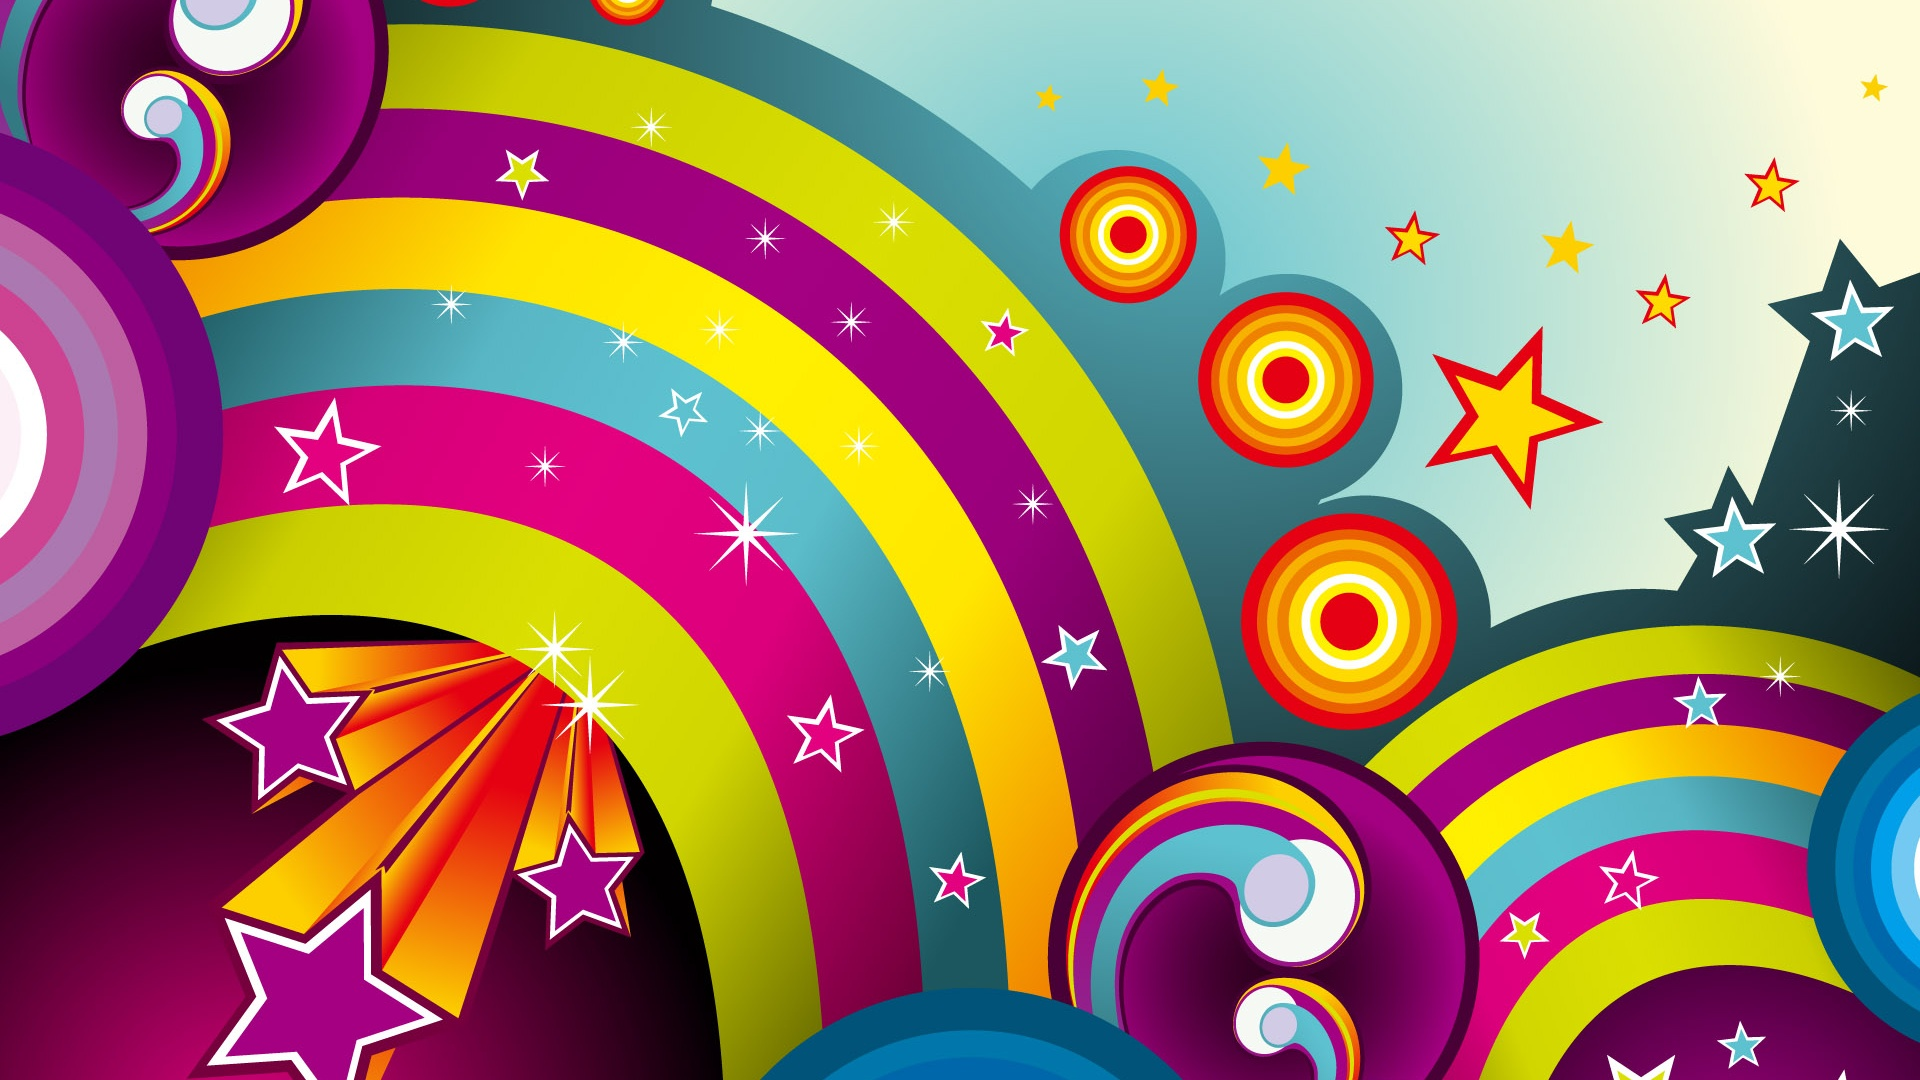 Colorful circle vector wallpaper - 1920x1080